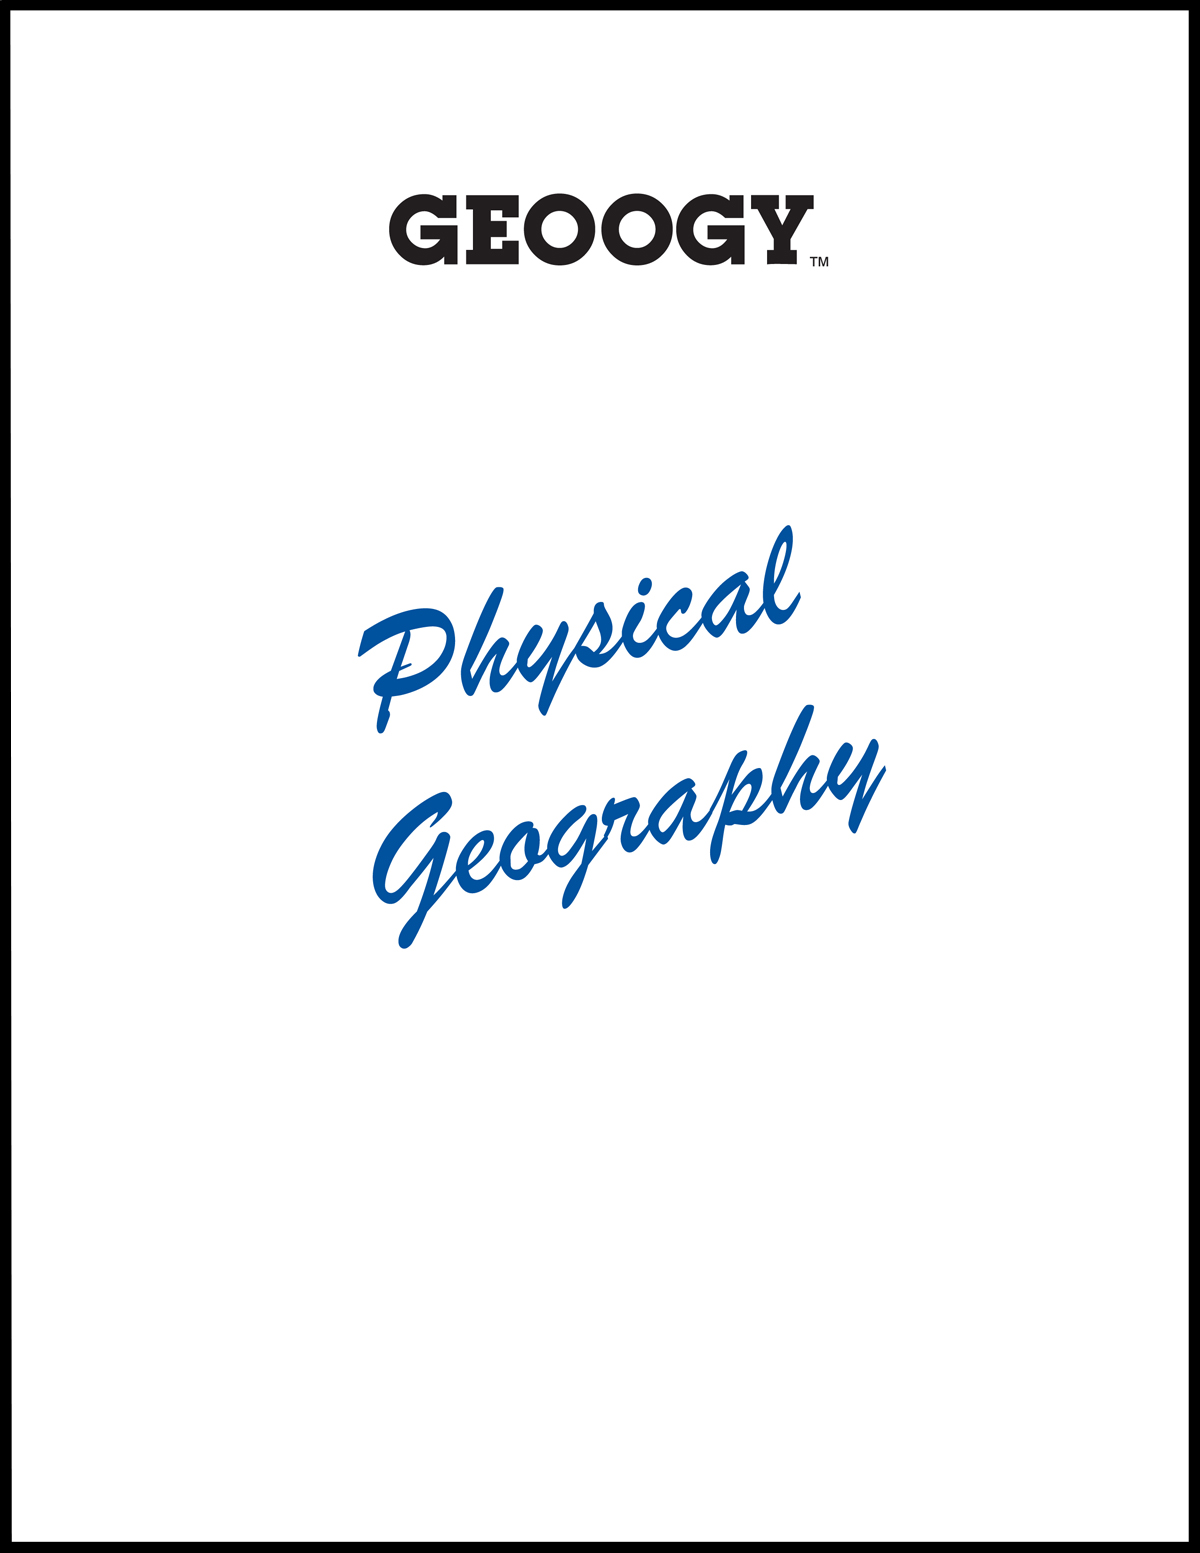 Geoogy Physical Geography